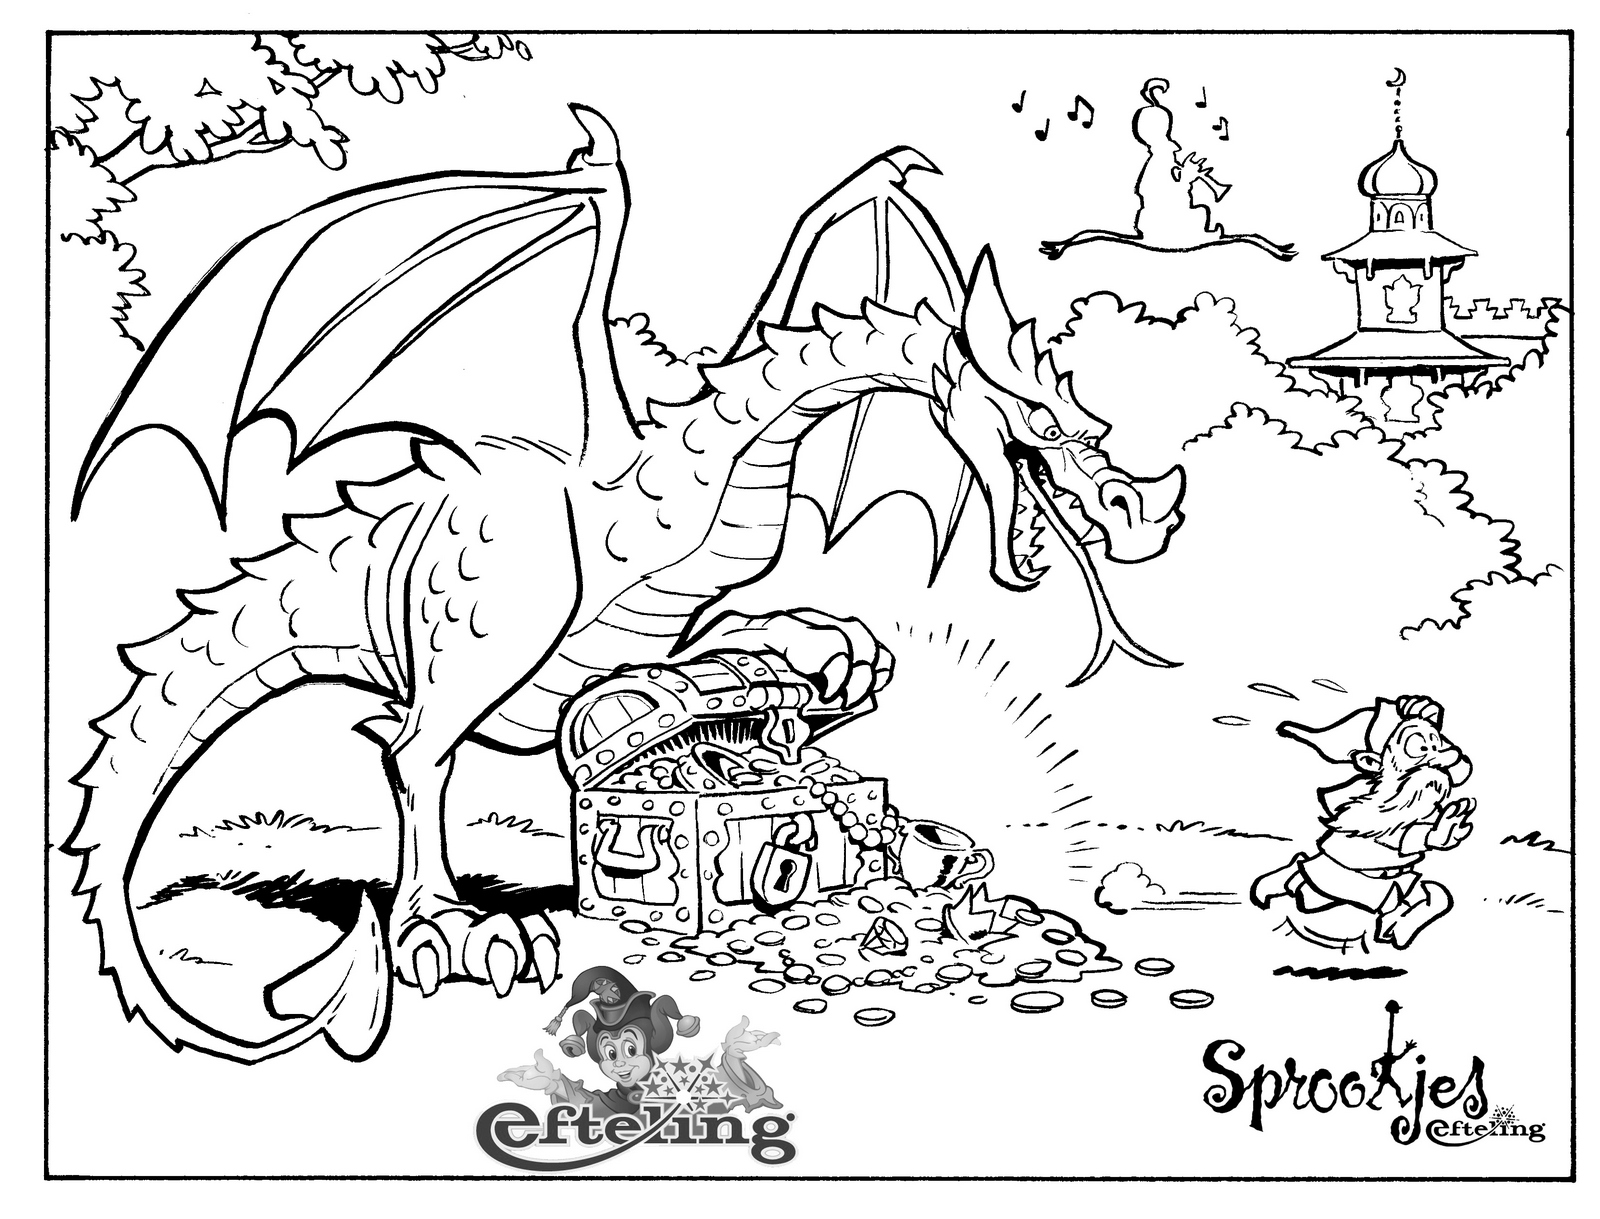 efteling dragon coloring page for children